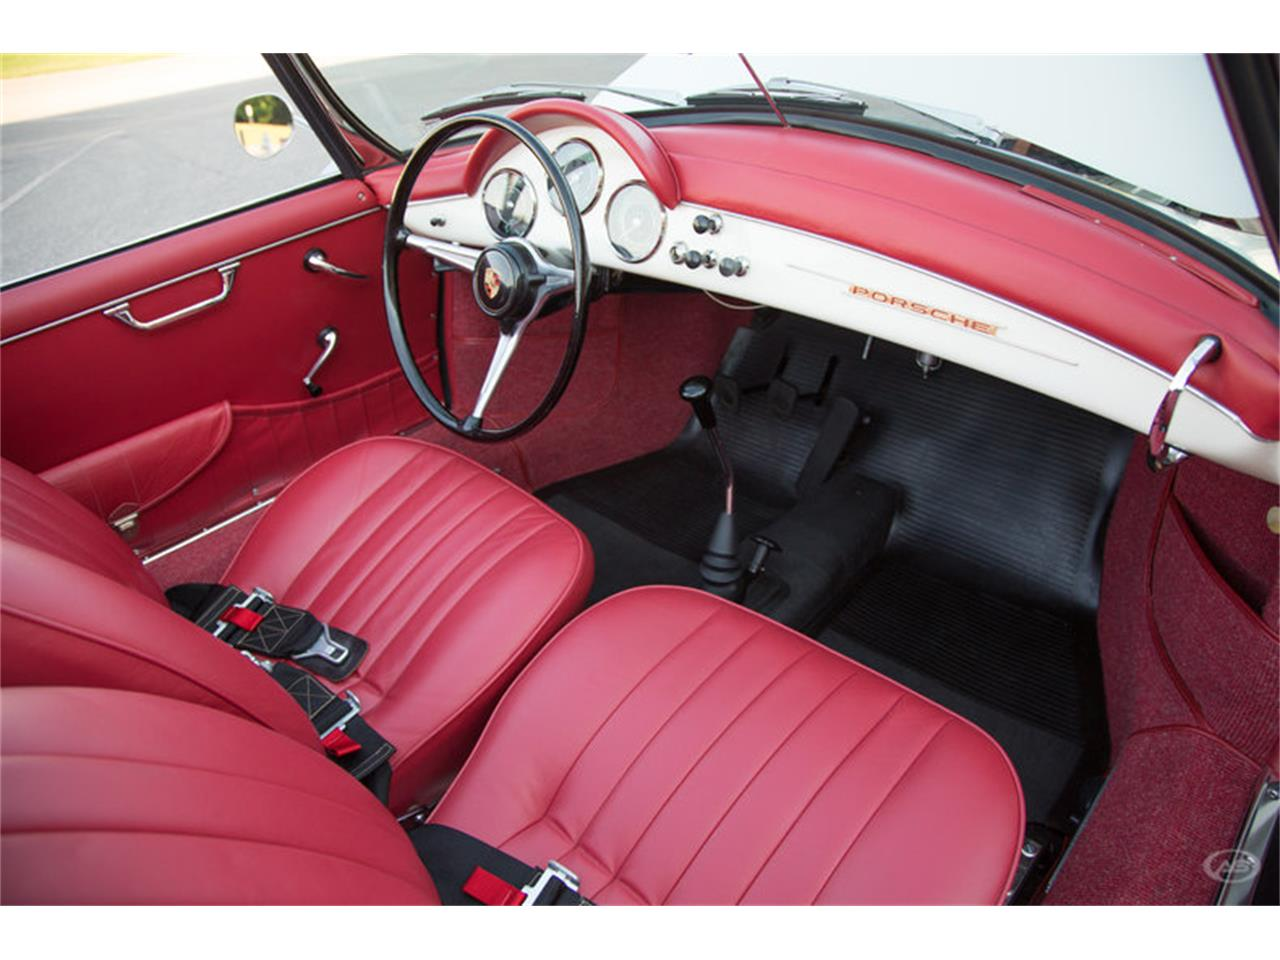 Large Picture of '61 Porsche 356B located in Collierville Tennessee - $179,900.00 - LHC5